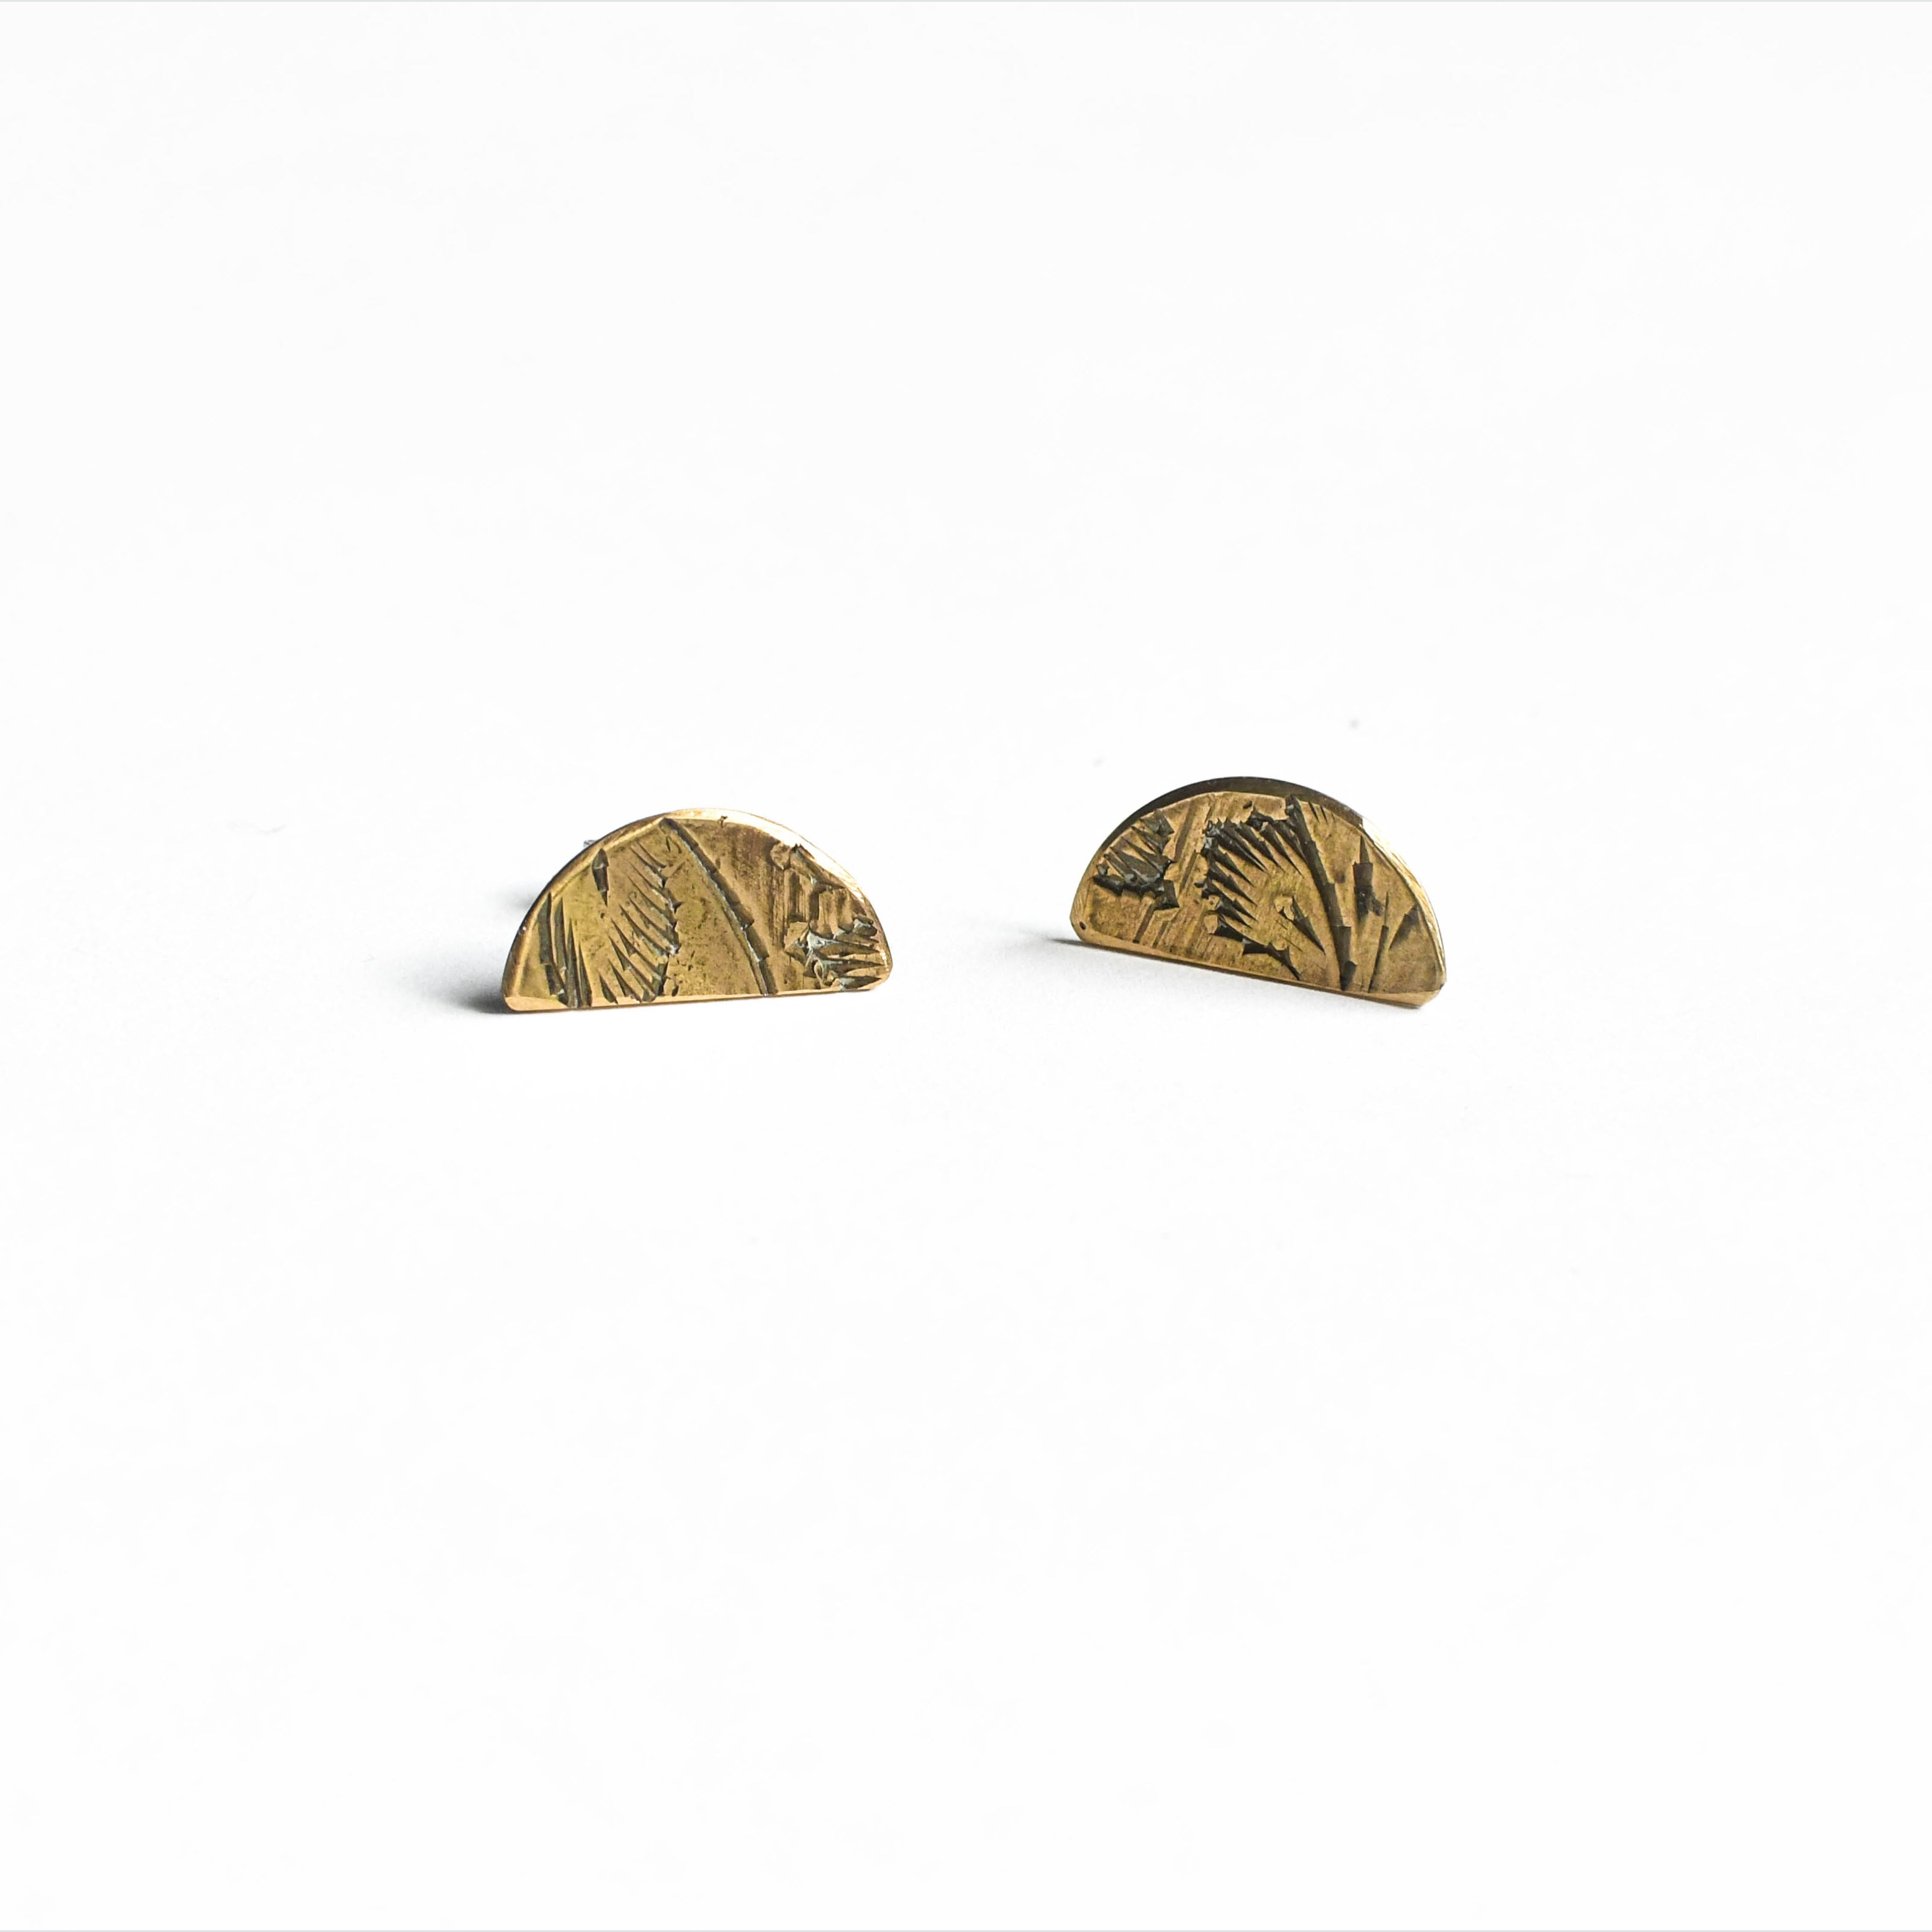 Souvenir Handmade - Half Moon Stud Earrings